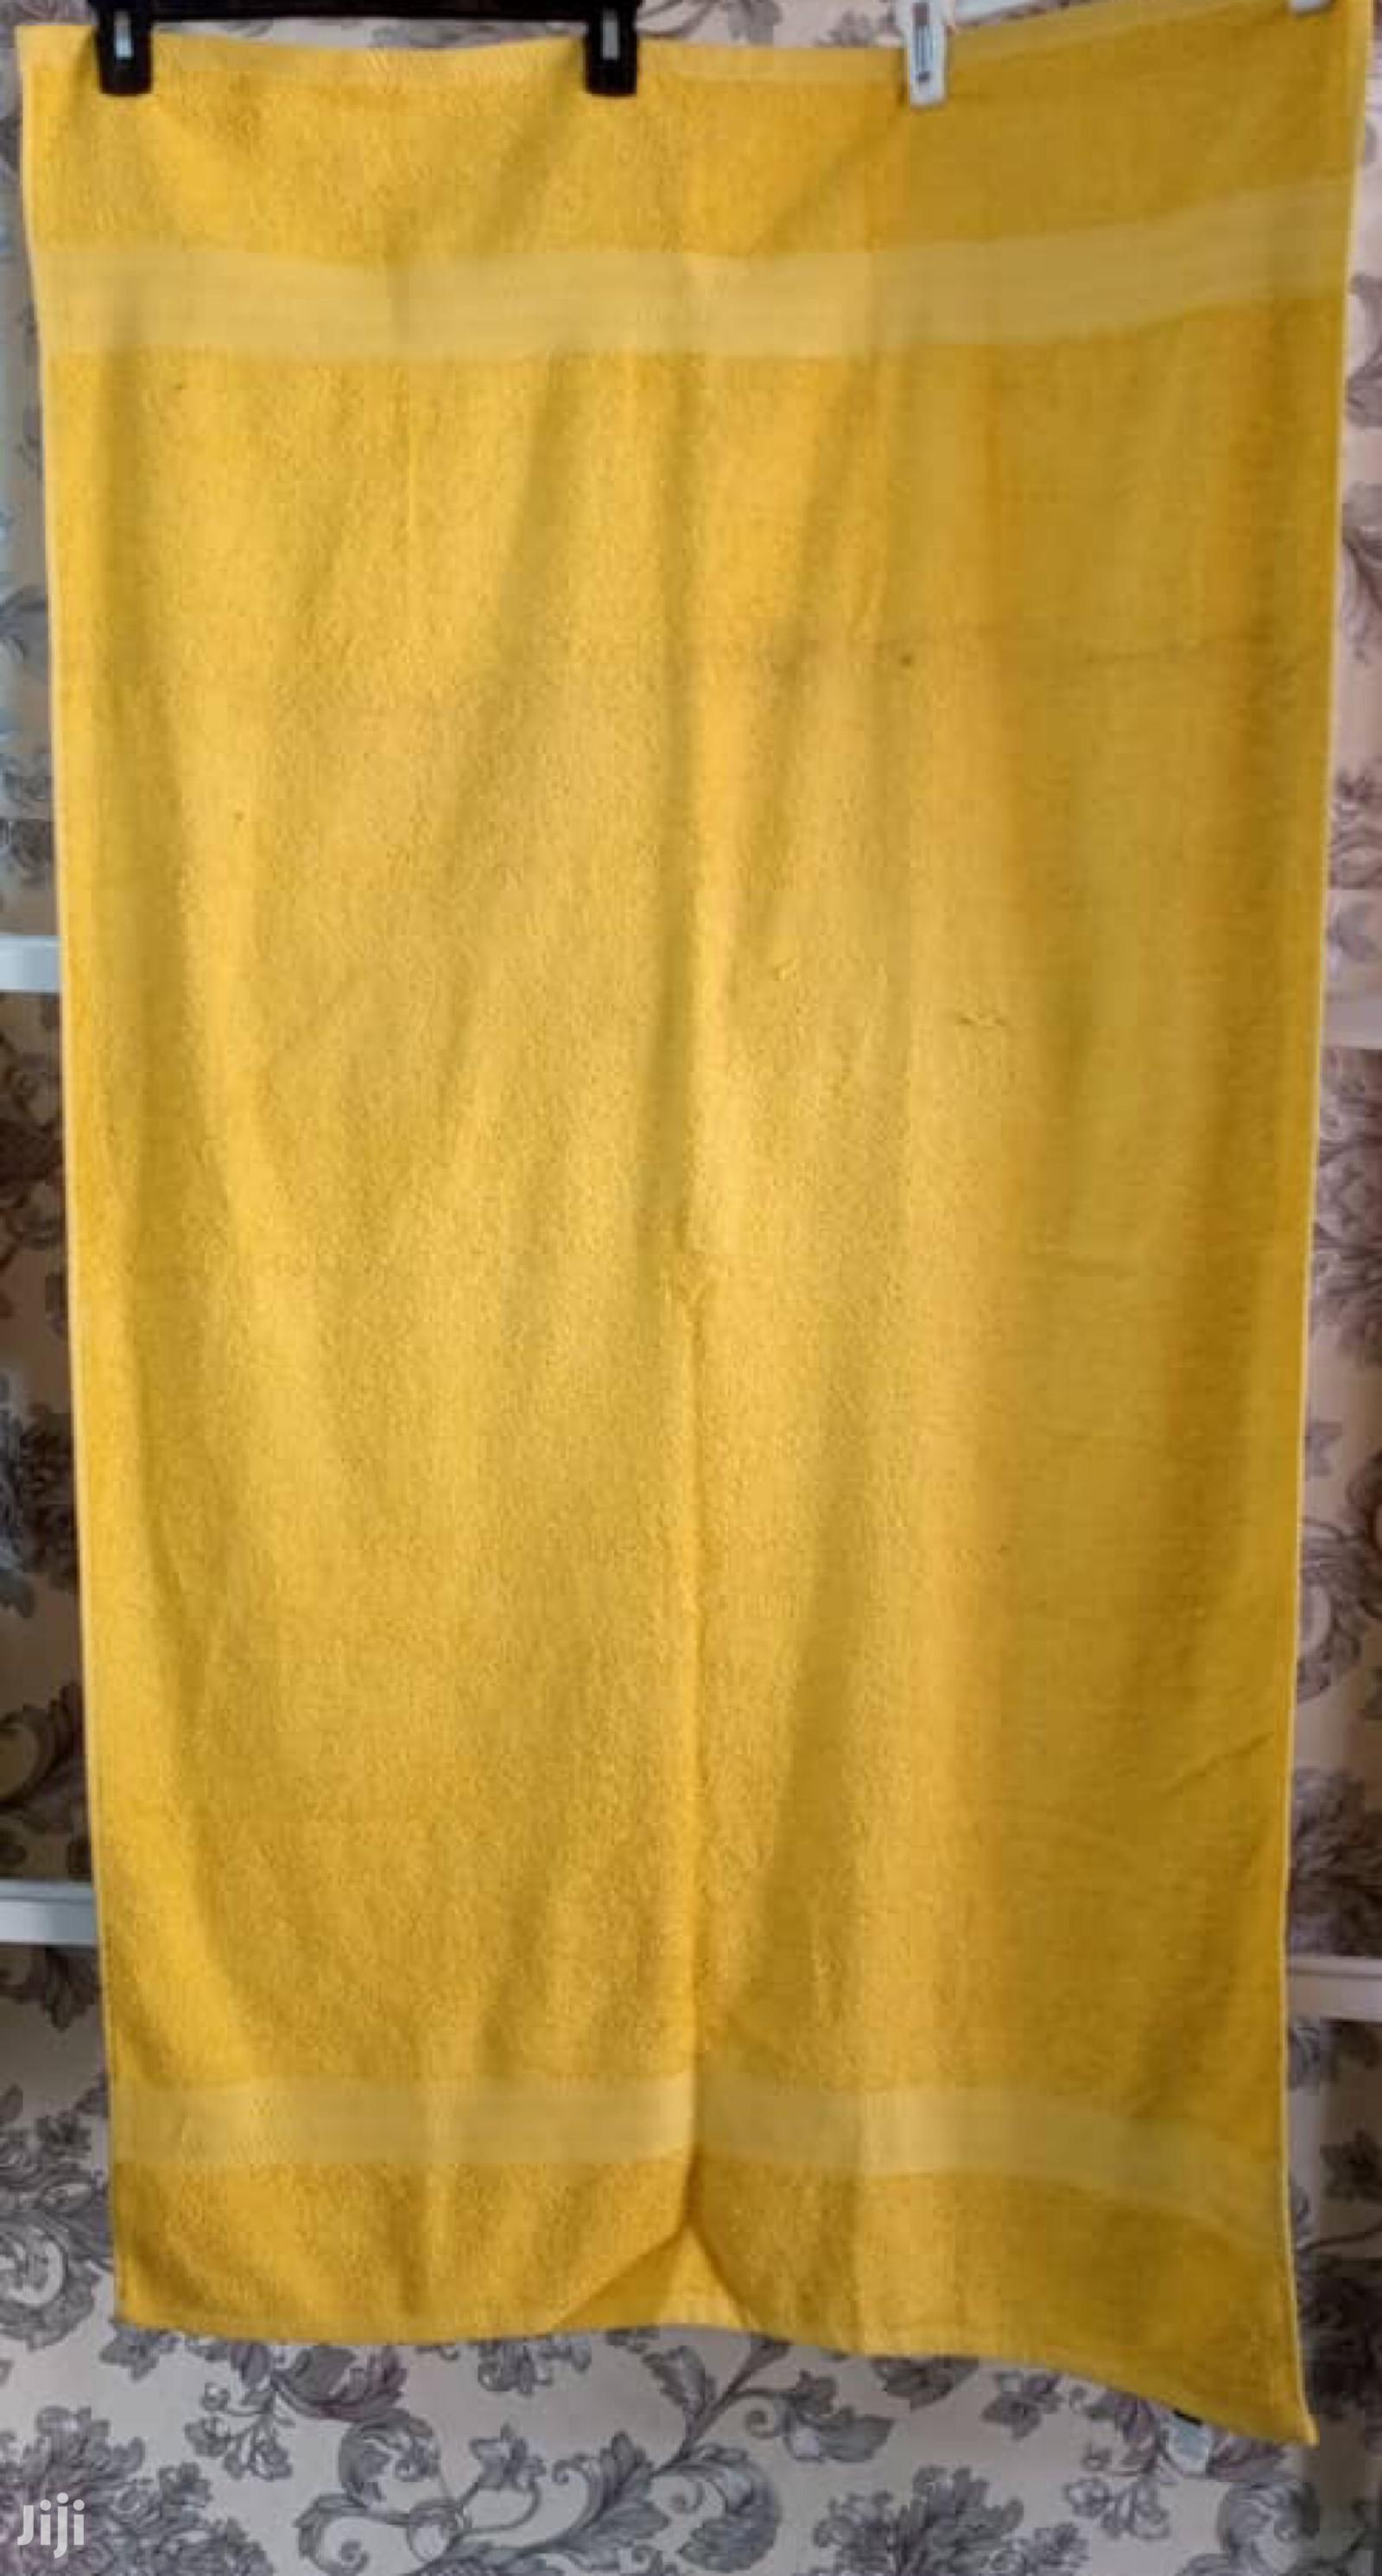 Bath Towels | Home Accessories for sale in Madina, Greater Accra, Ghana